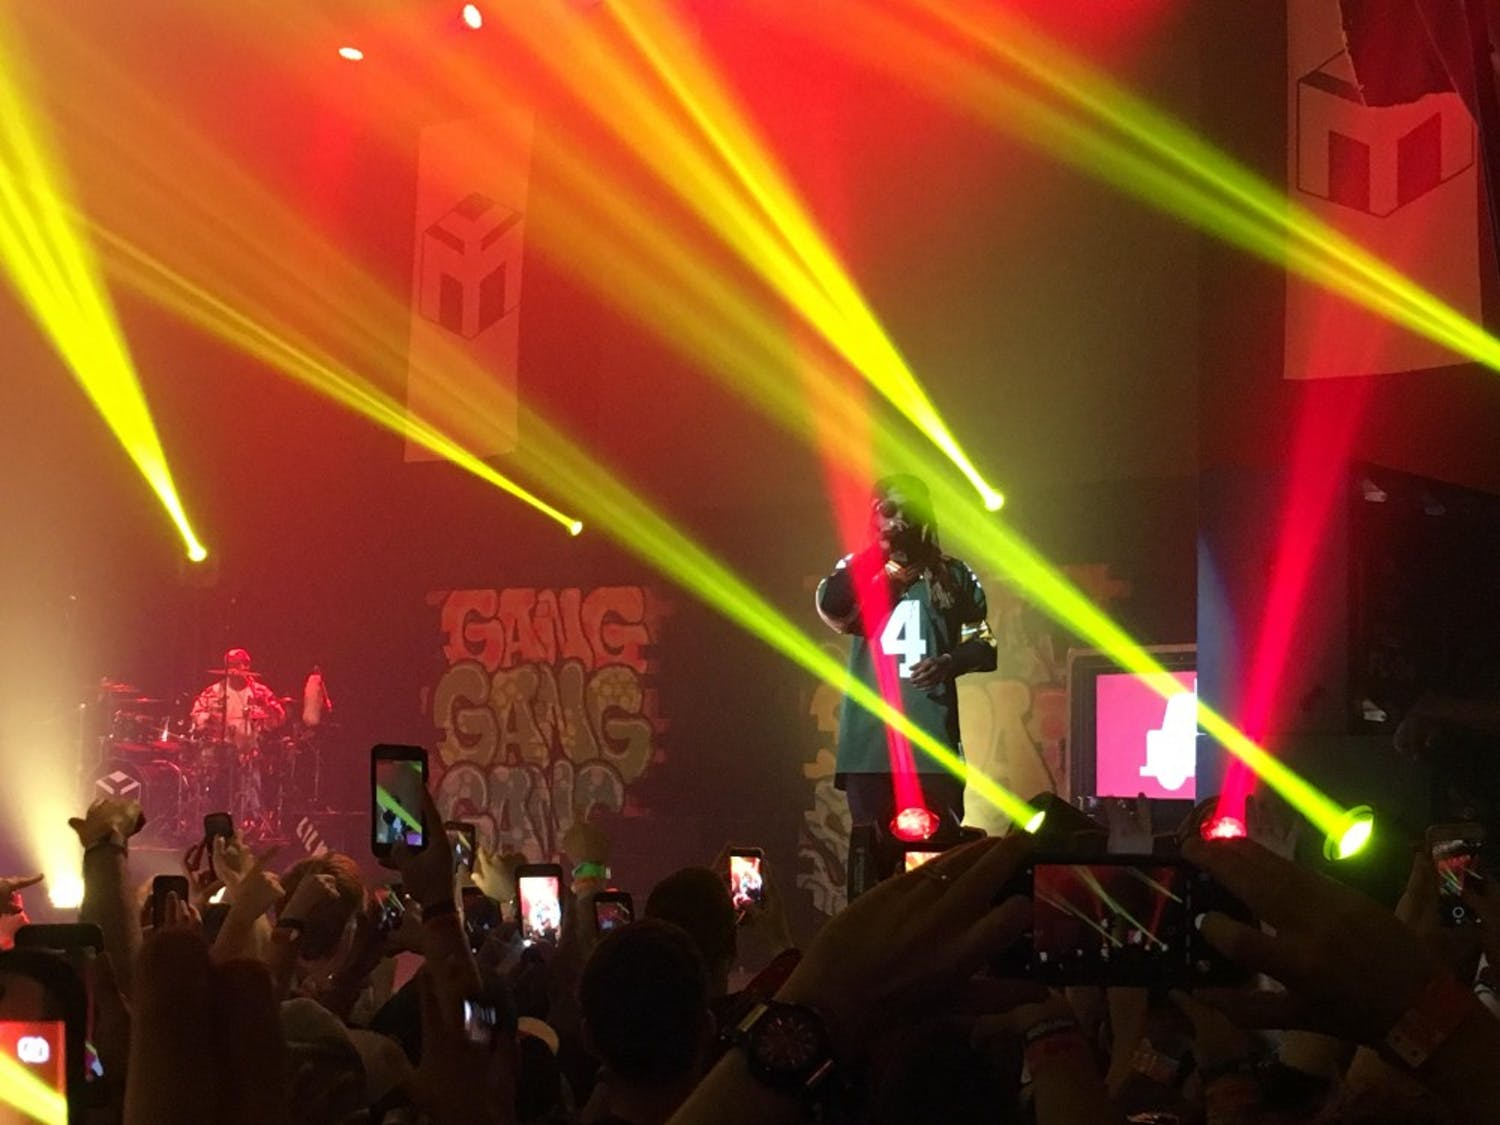 Wearing a customized Favre jersey, Lil Wayne performed classic tracks during the sold-out show.